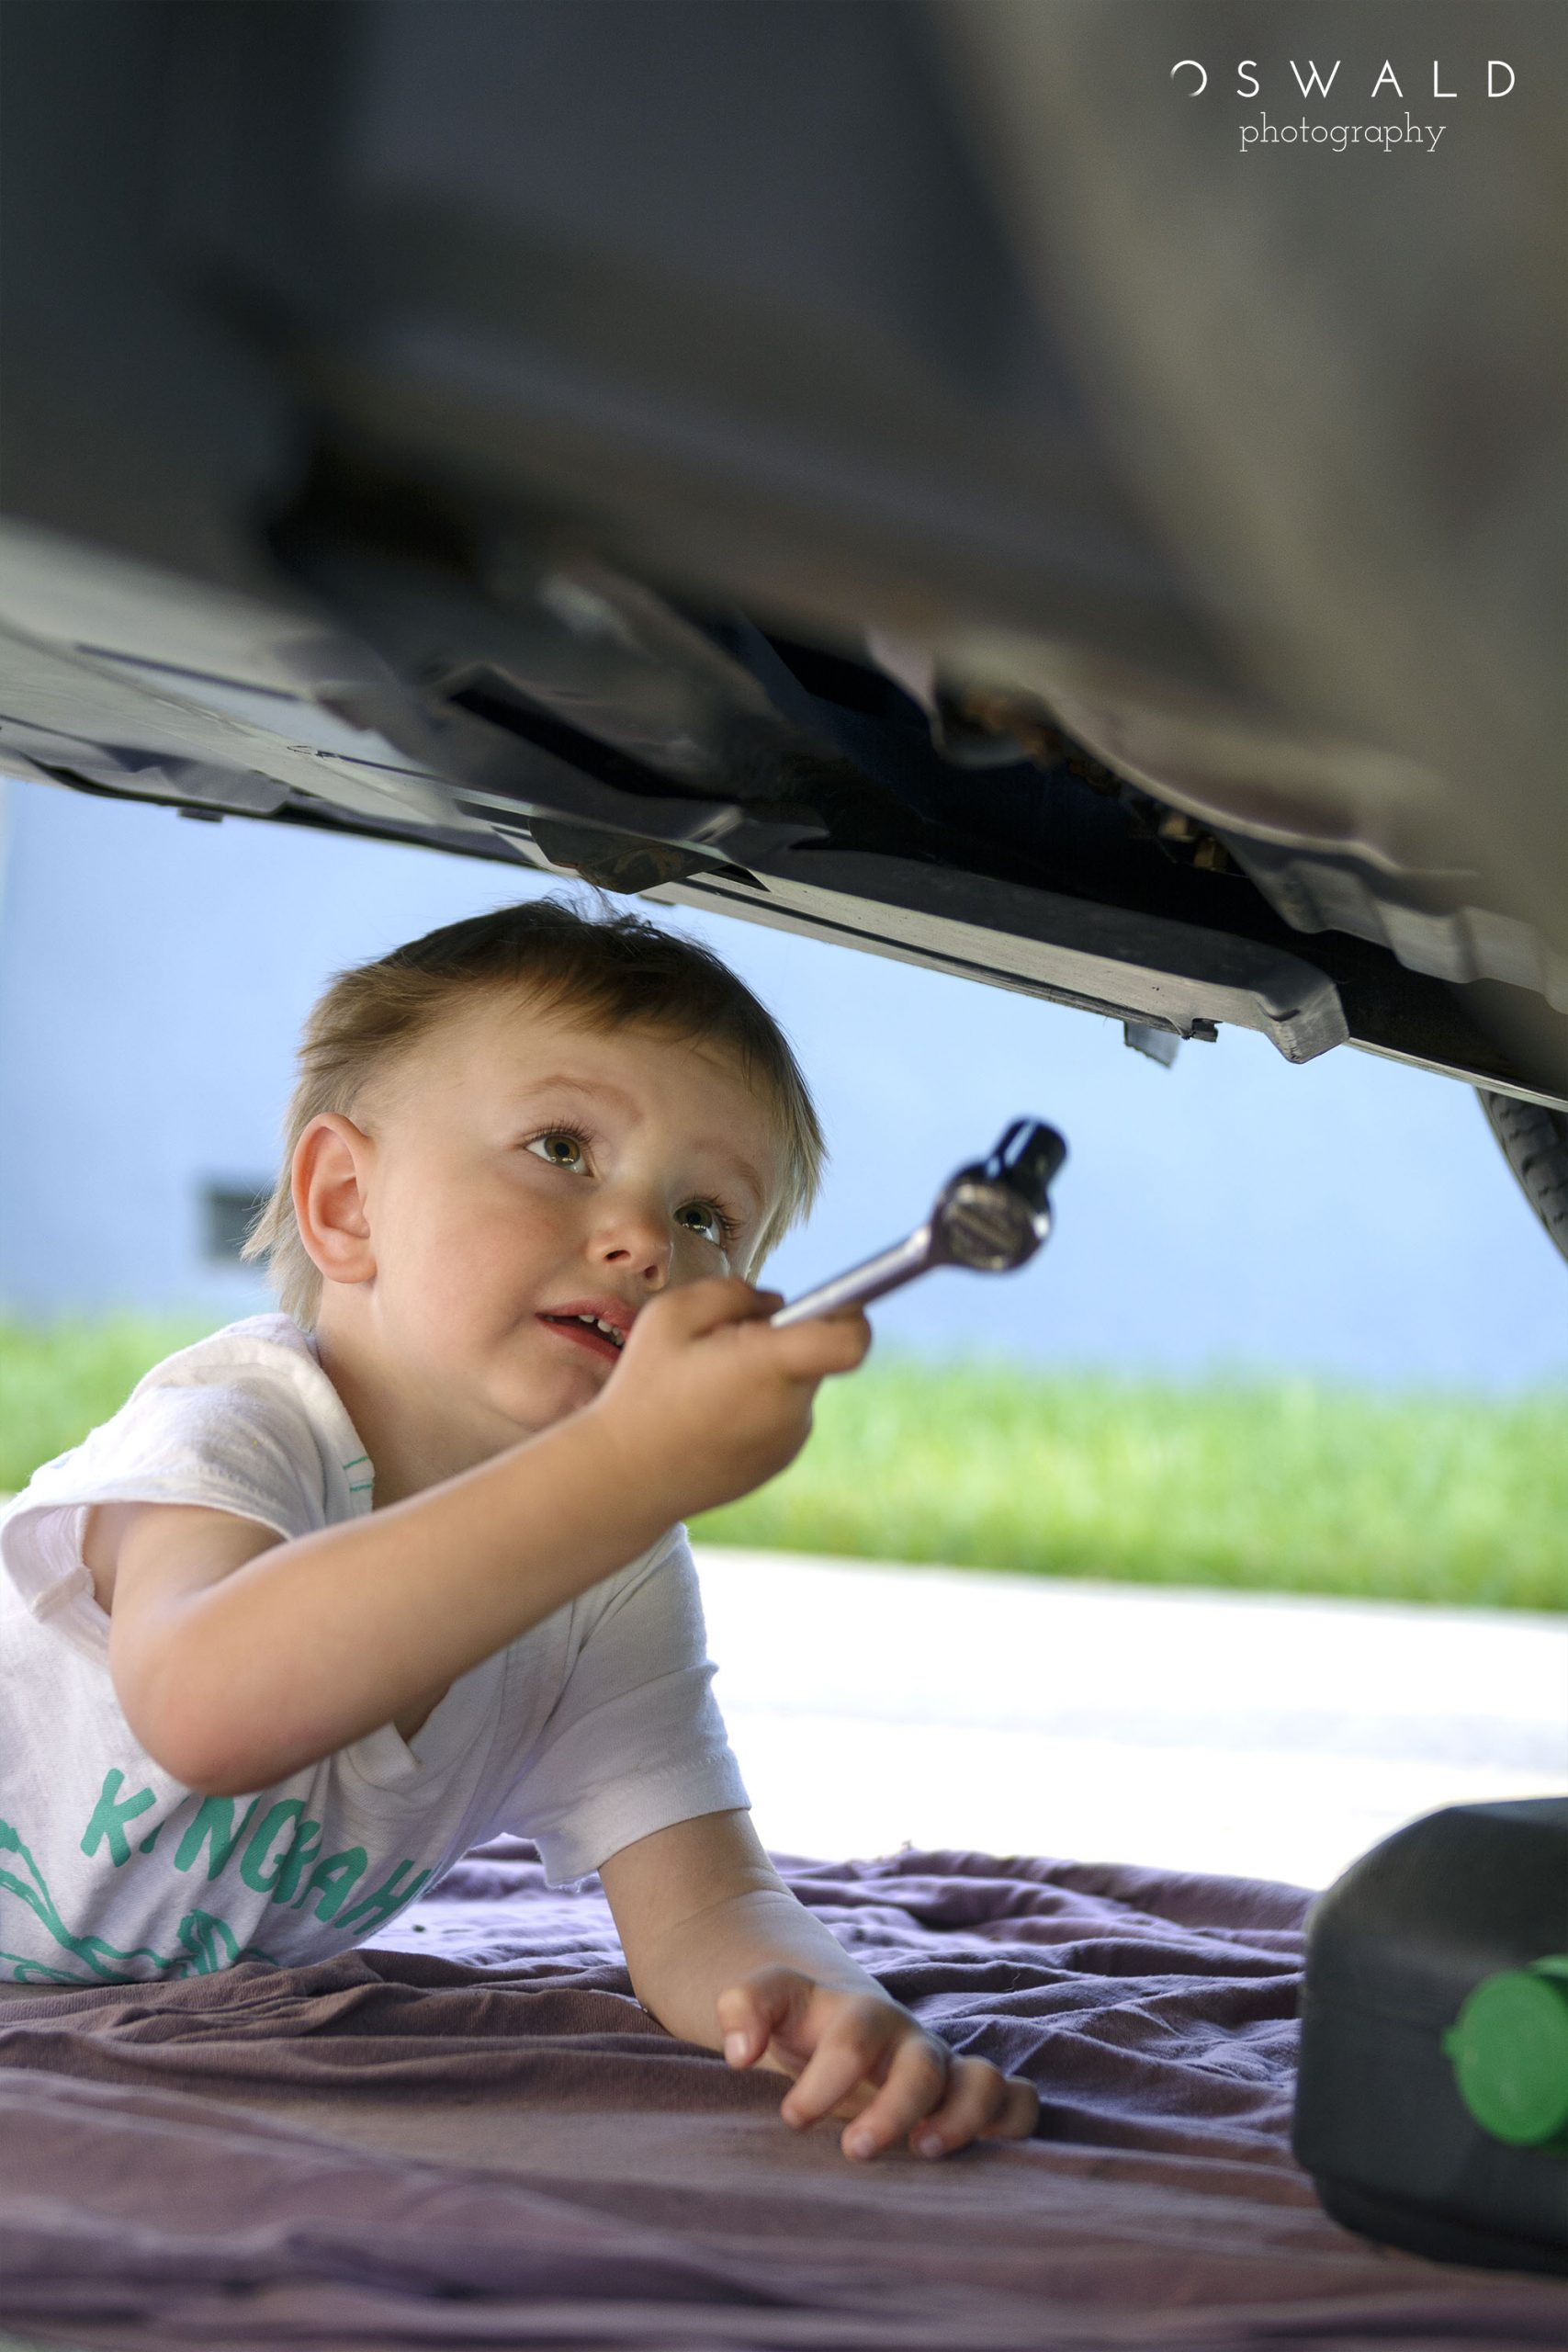 A photograph of a young caucasian boy holds a socket wrench under a car with ambitious plans for repairs.